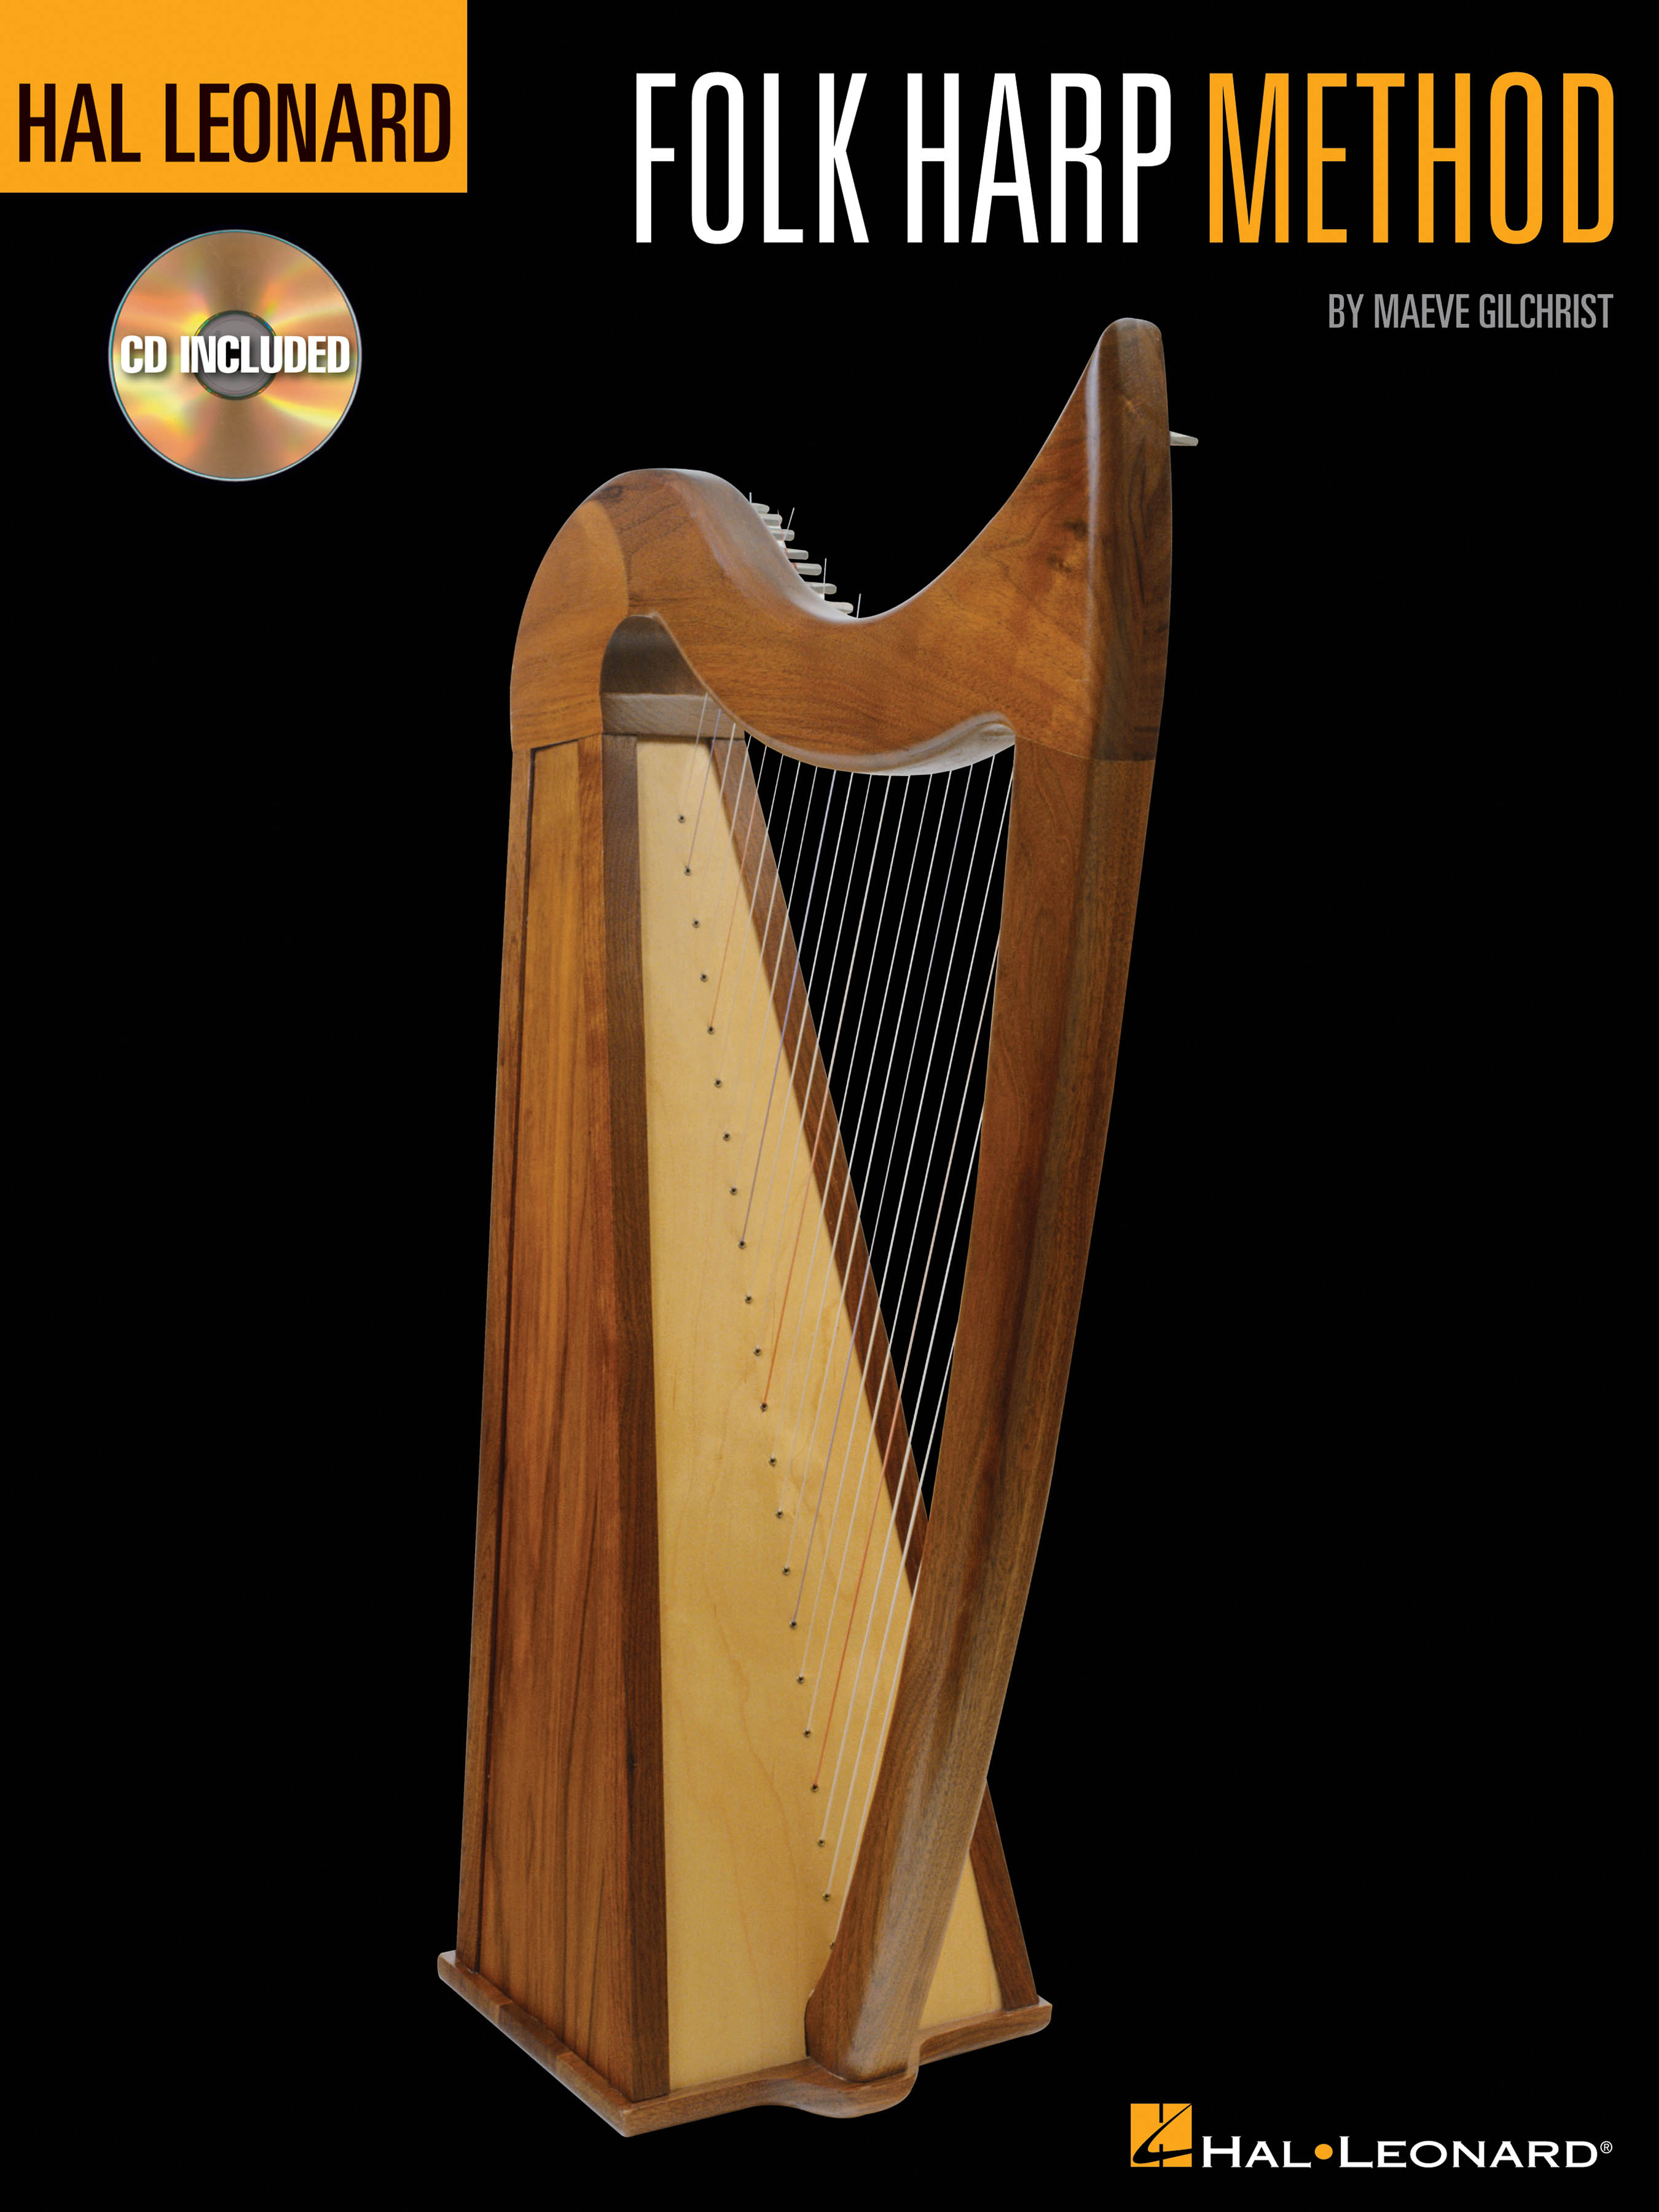 Hal Leonard Folk Harp Method: Harp Solo: Instrumental Tutor